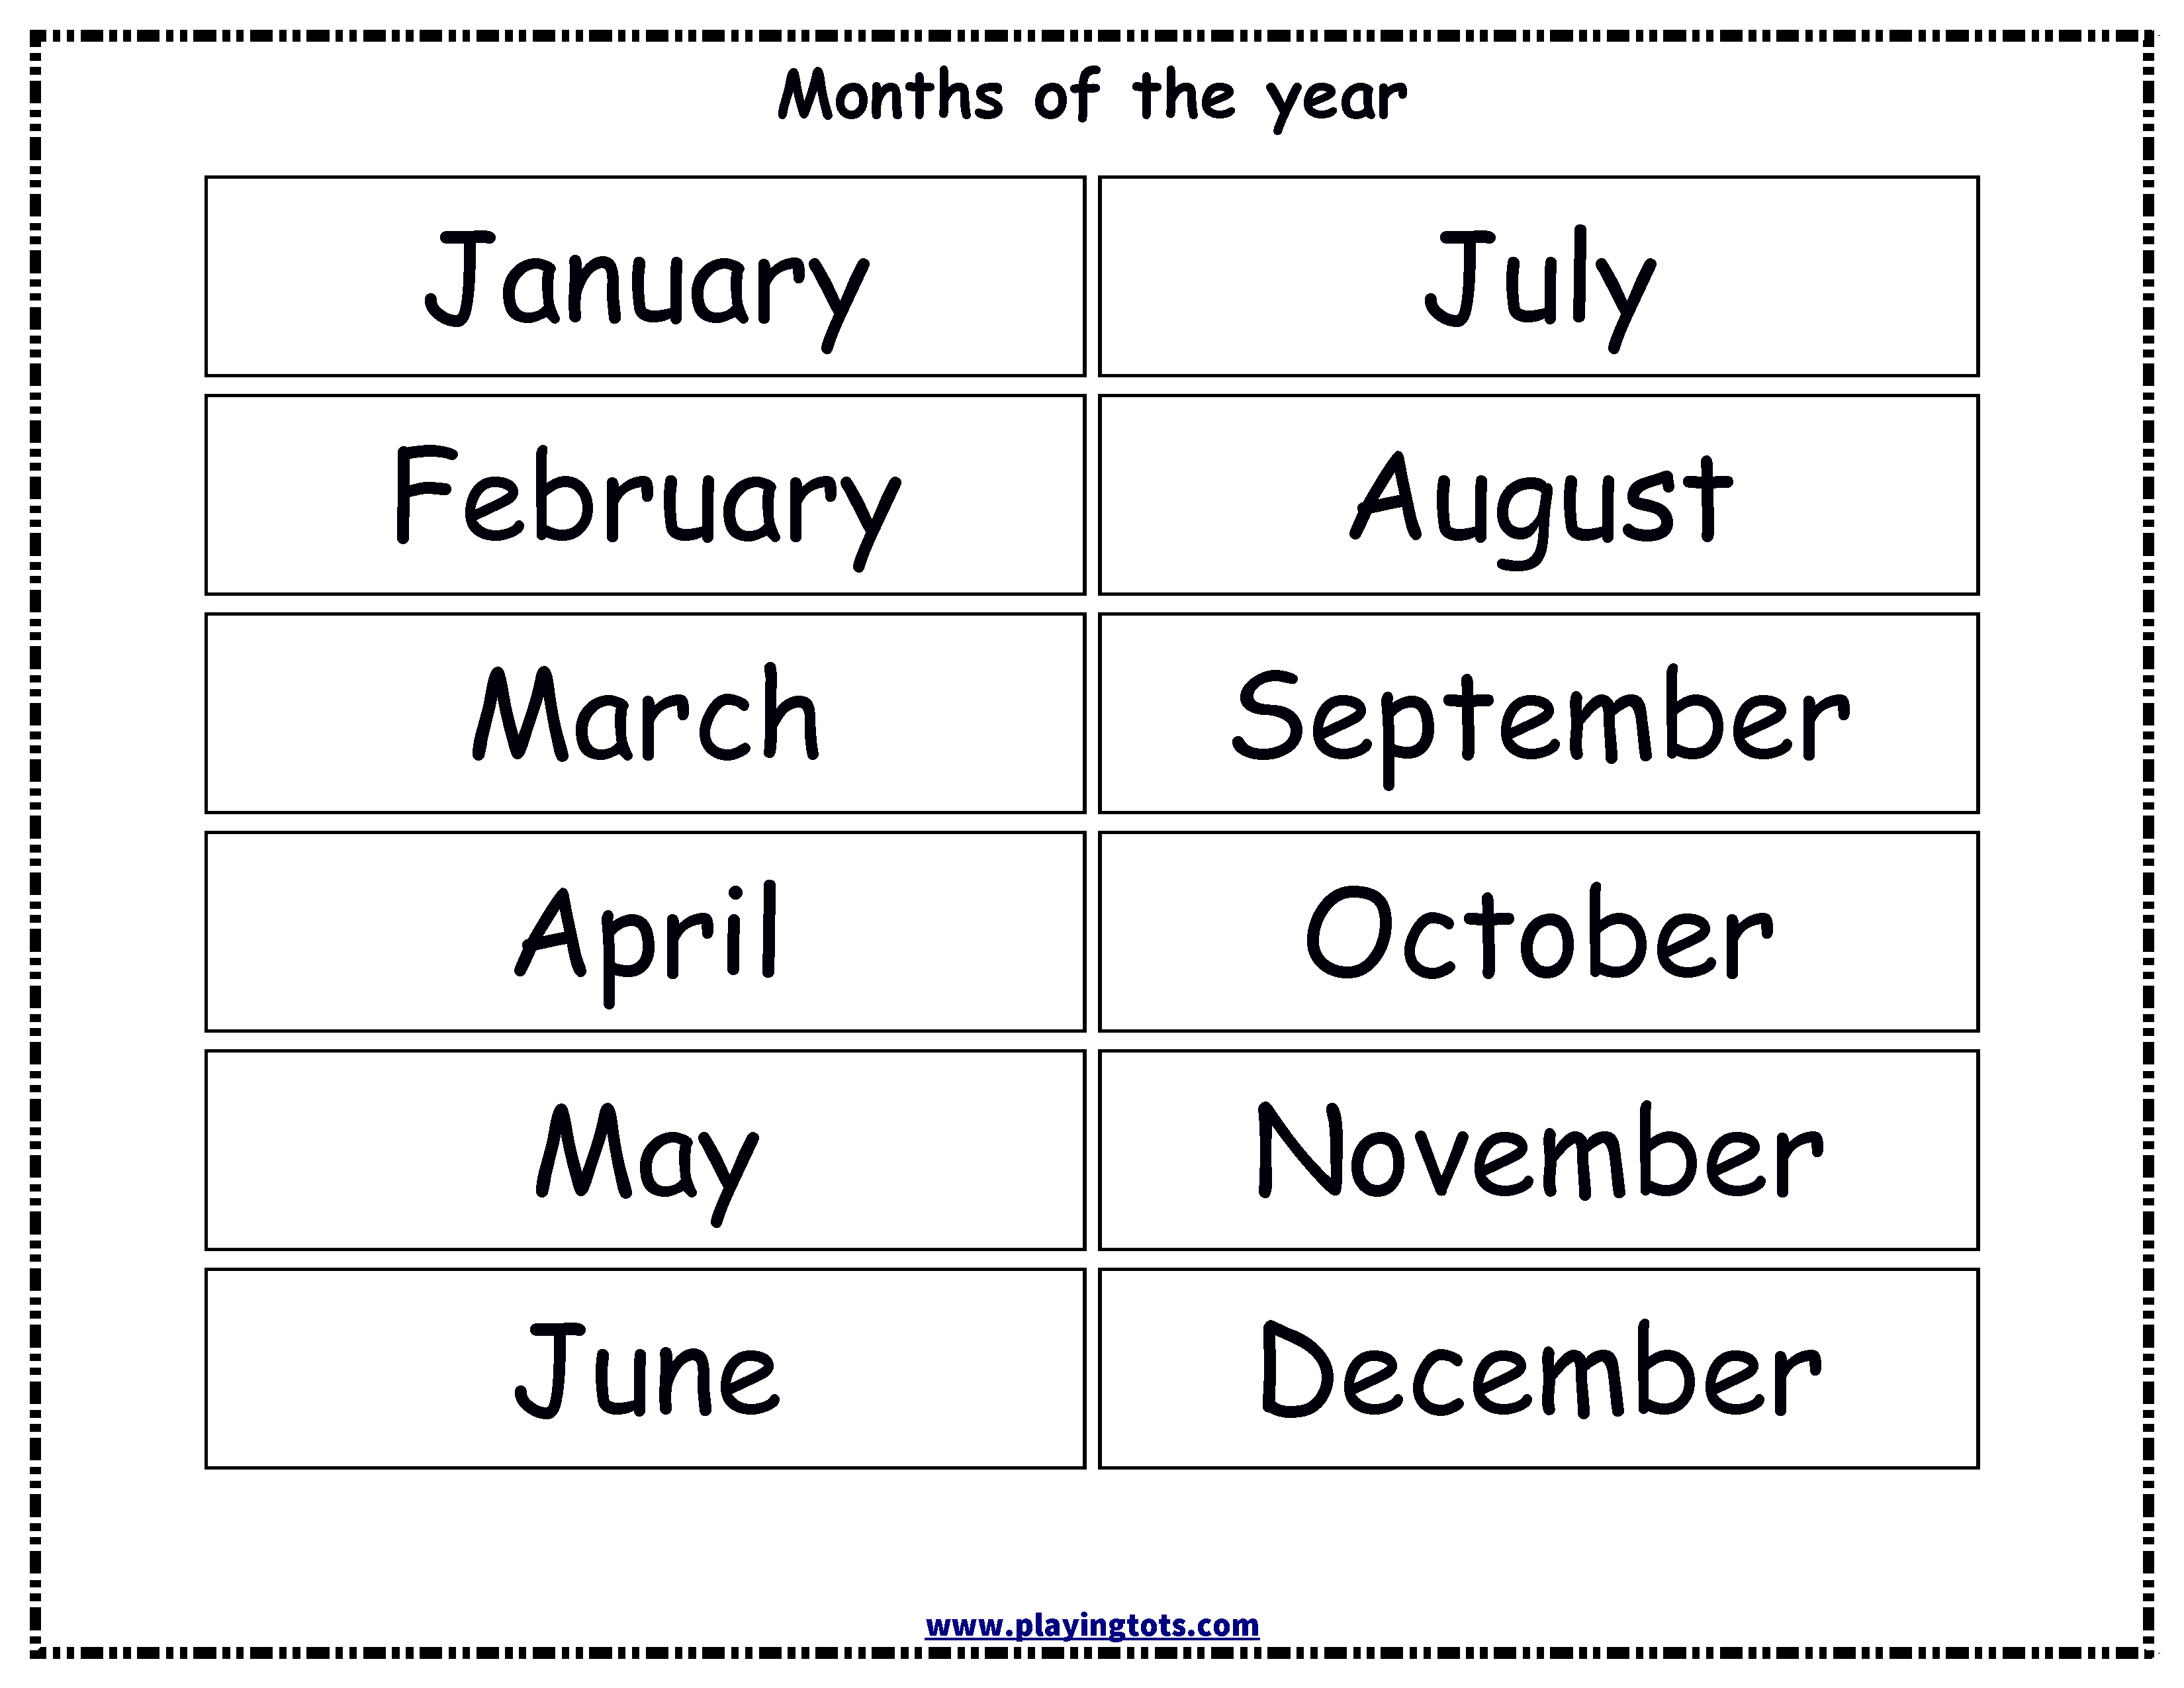 Free Printable Months Of The Year Chart | Alivia Learning Folder - Free Printable Months Of The Year